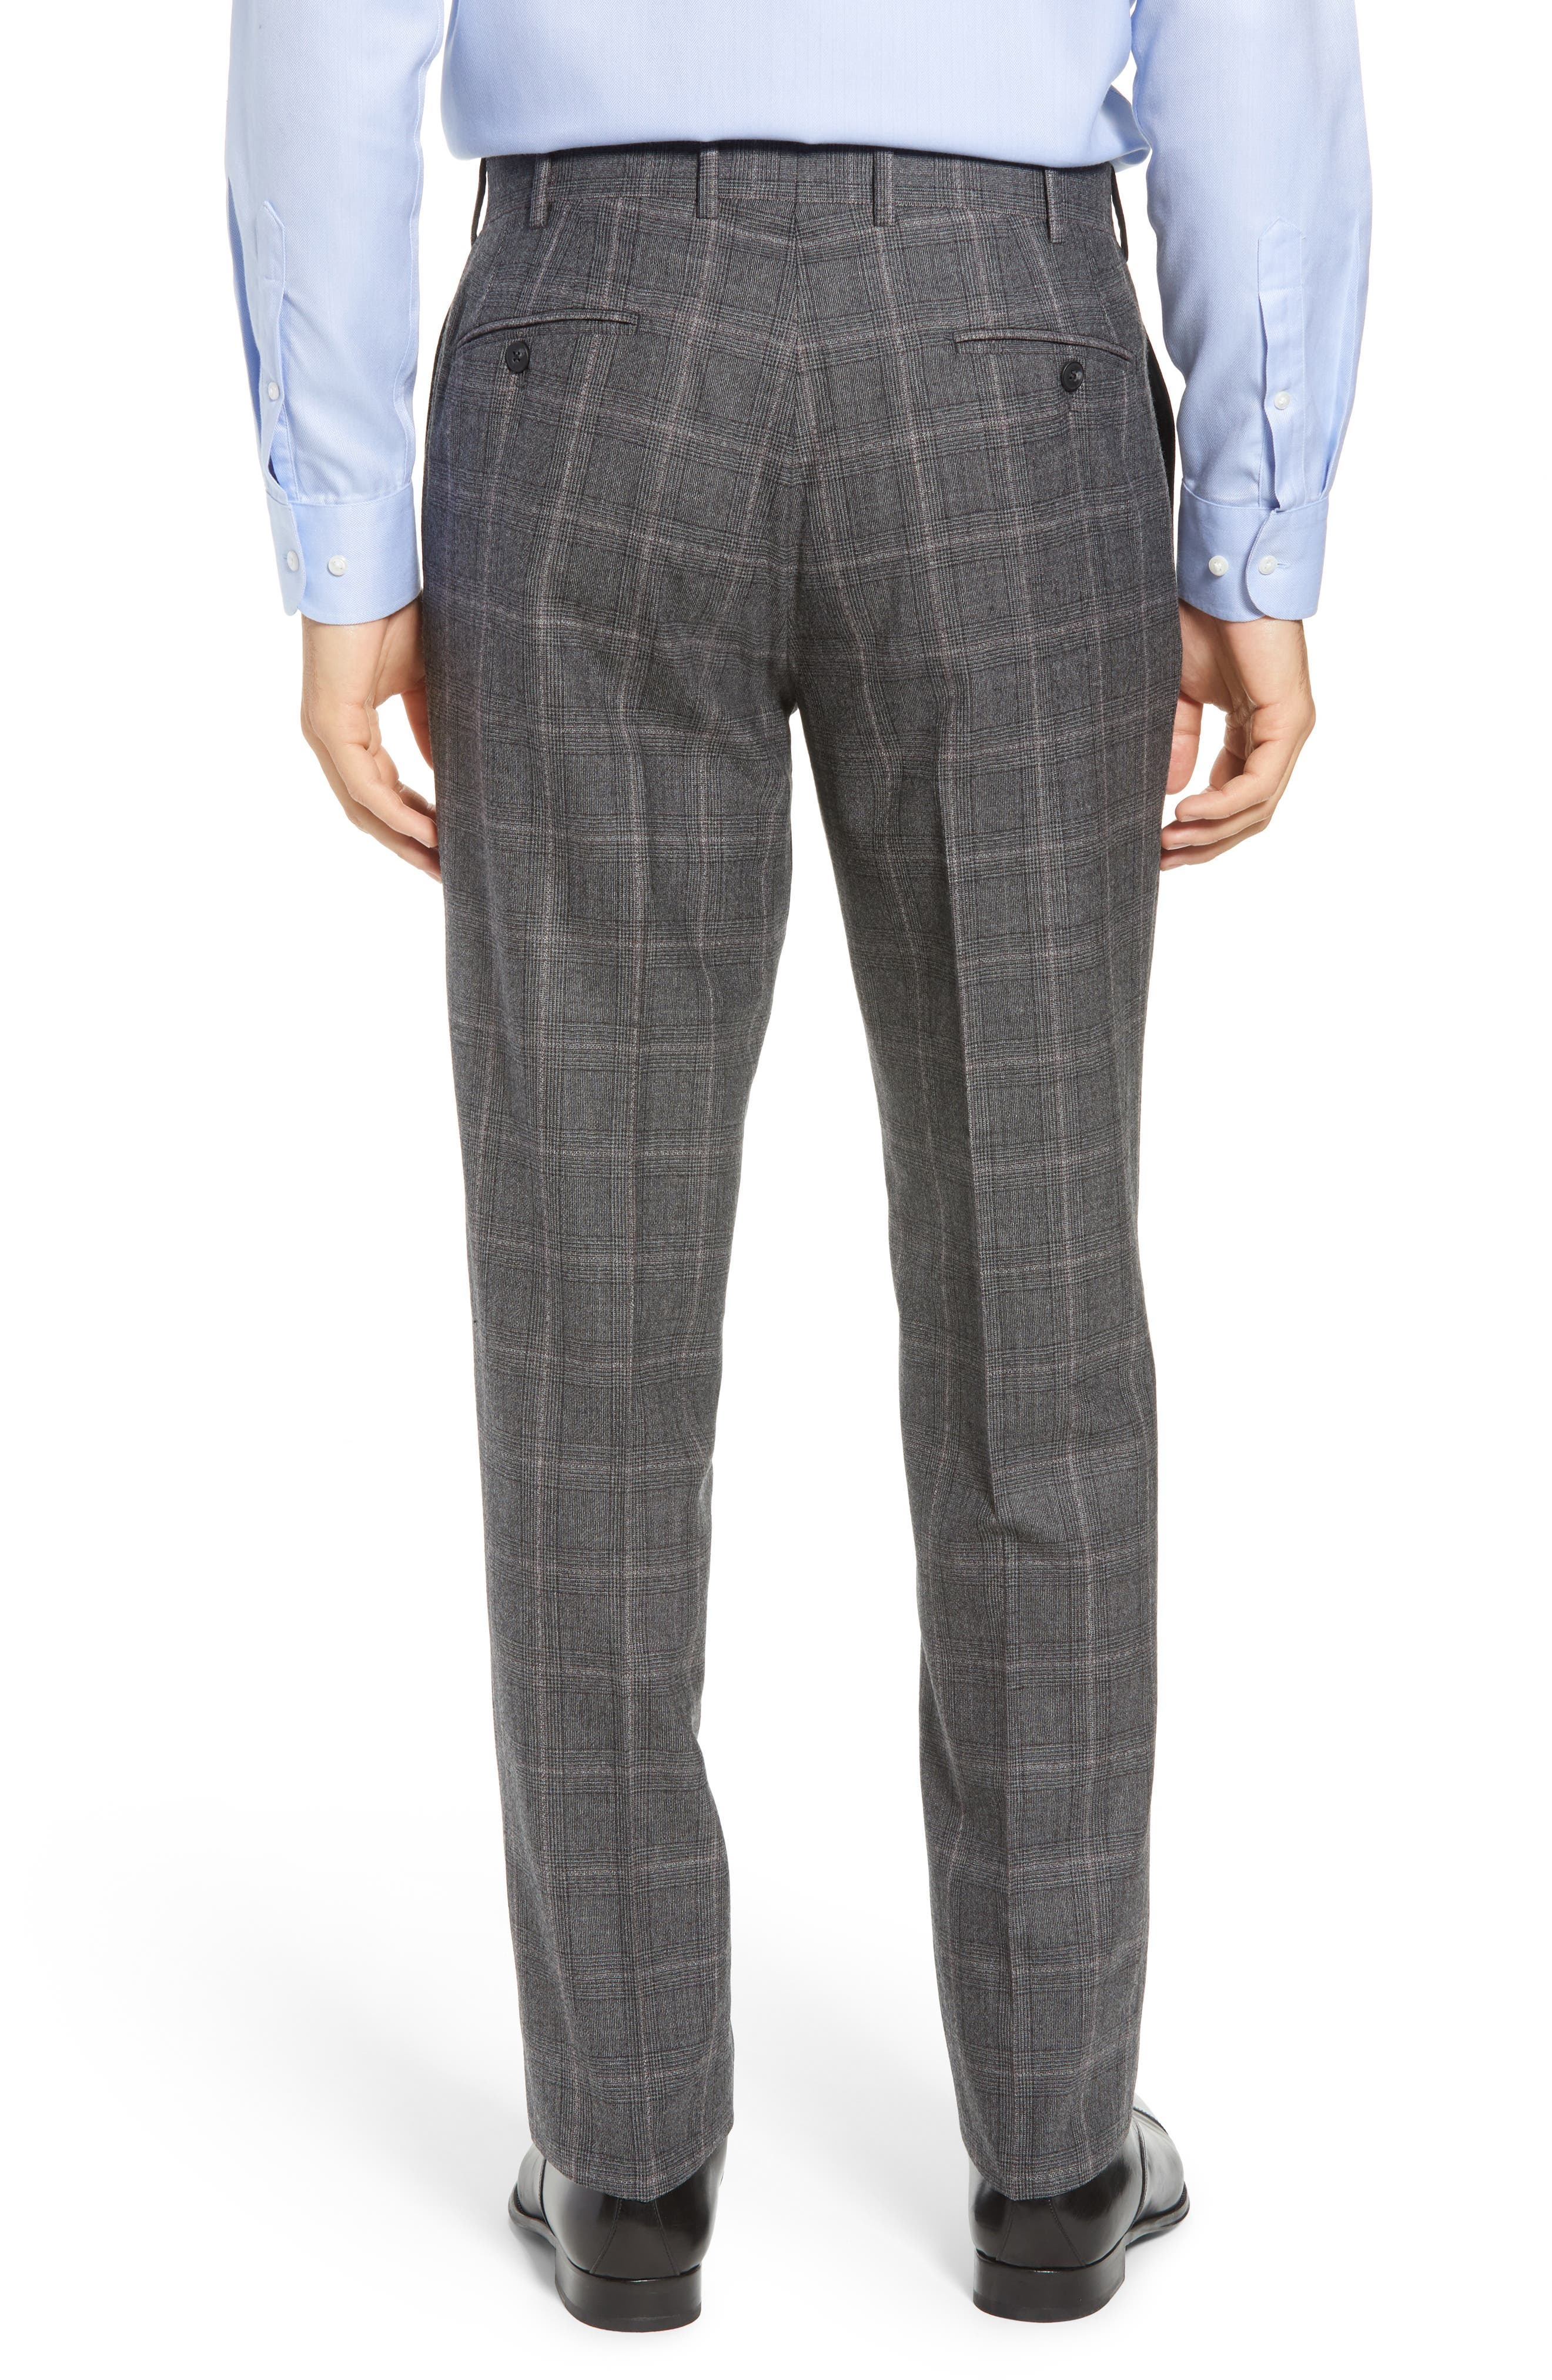 Torino Traditional Fit Flat Front Plaid Wool & Cashmere Trousers,                             Alternate thumbnail 2, color,                             GREY